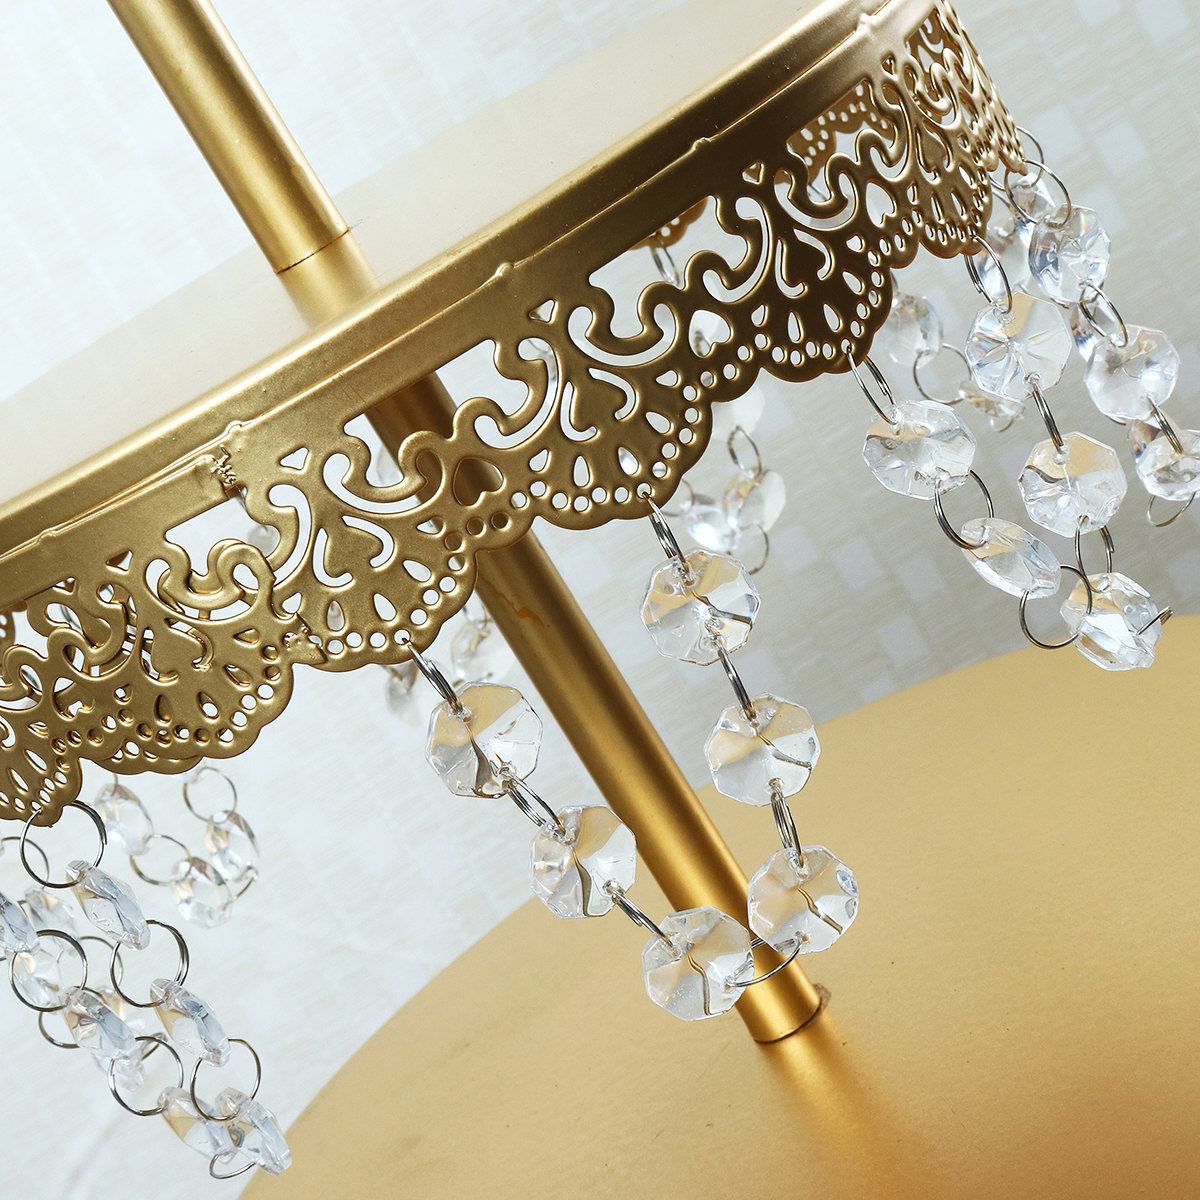 12Pcs Vintage Crystal Cake Holder Cupcake Stand Wedding Dessert Display Storage Party Decorations